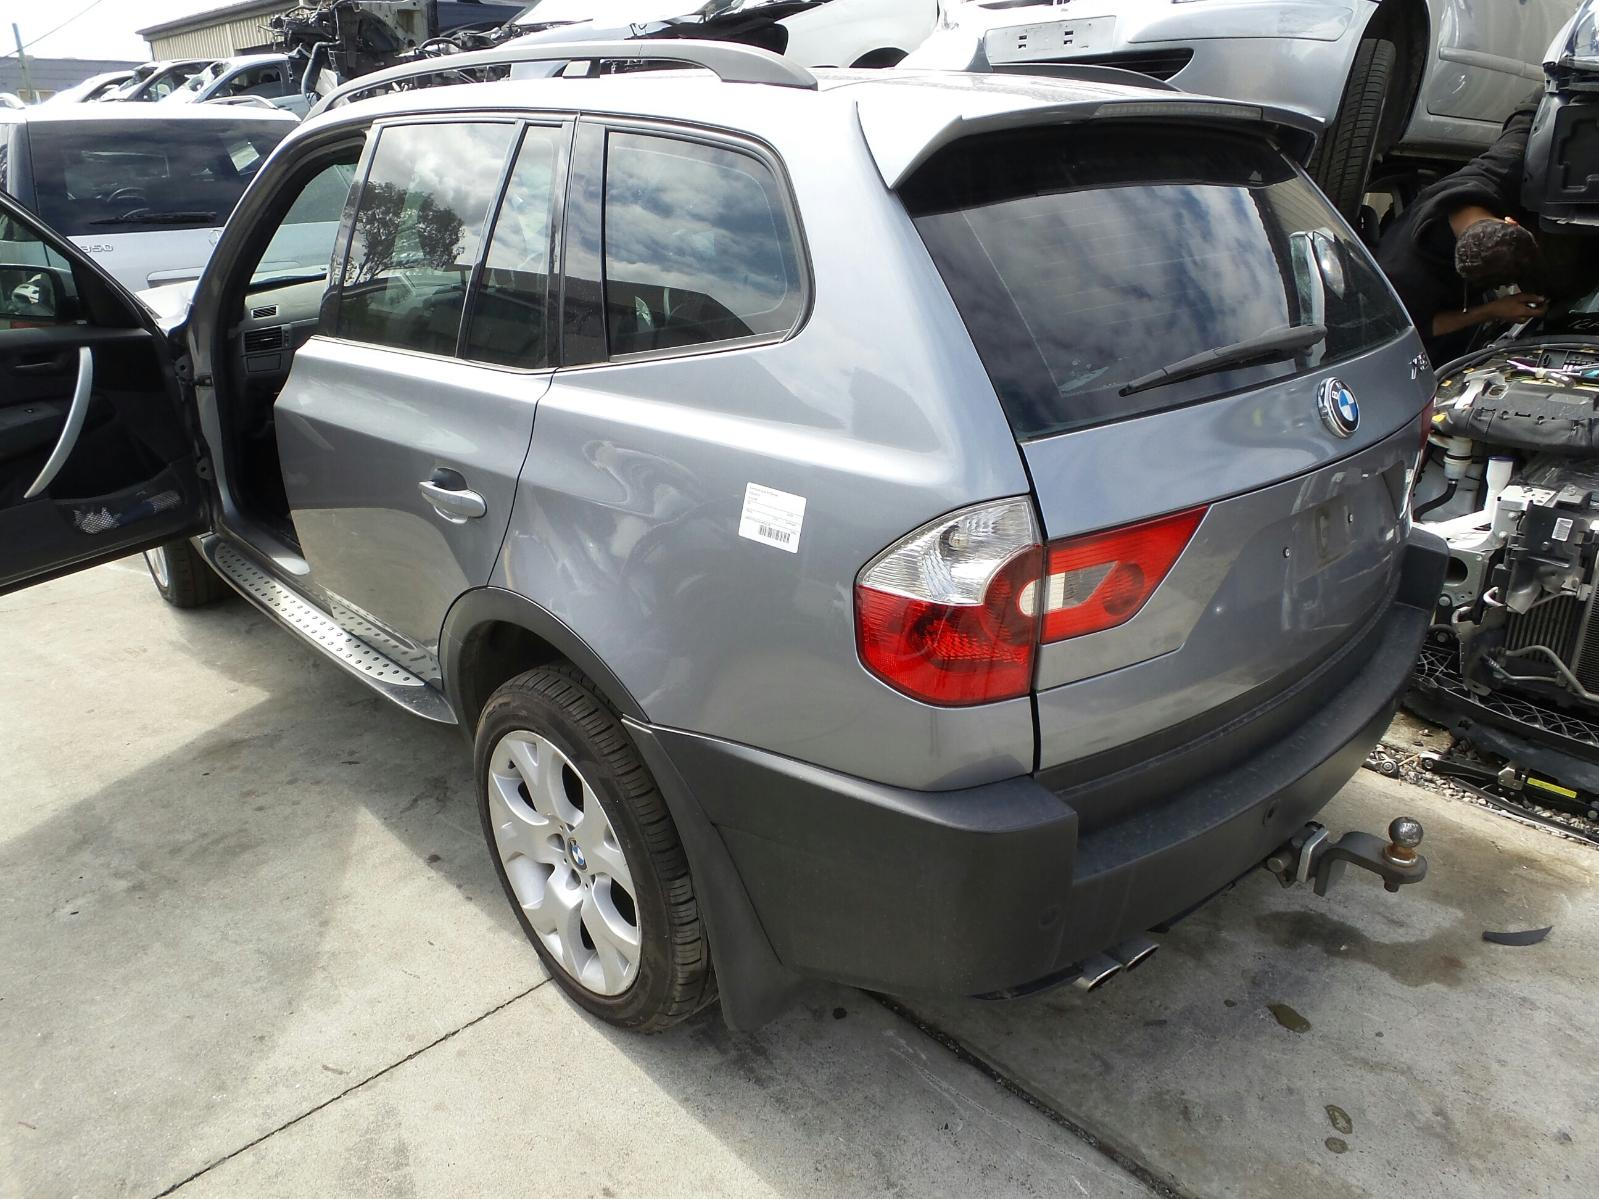 Bmw x3 parts for sale - We Are Currently Wrecking Dismantling This Vehicle Please Call Us For Any Parts Not Listed On Ebay Thanks